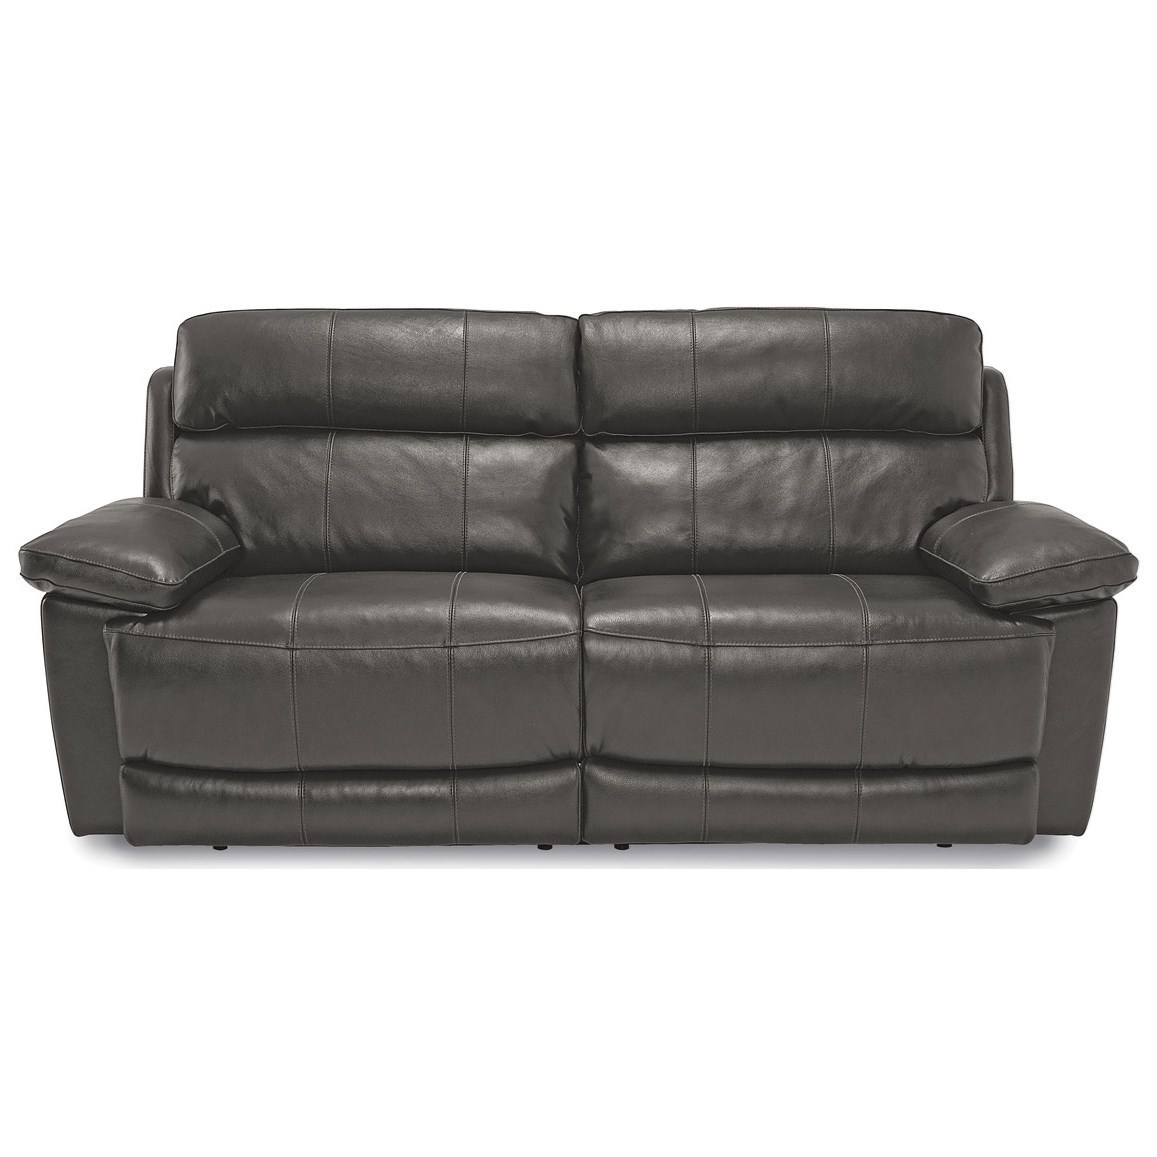 Finley Power Headrest Reclining Sofa by Palliser at Darvin Furniture